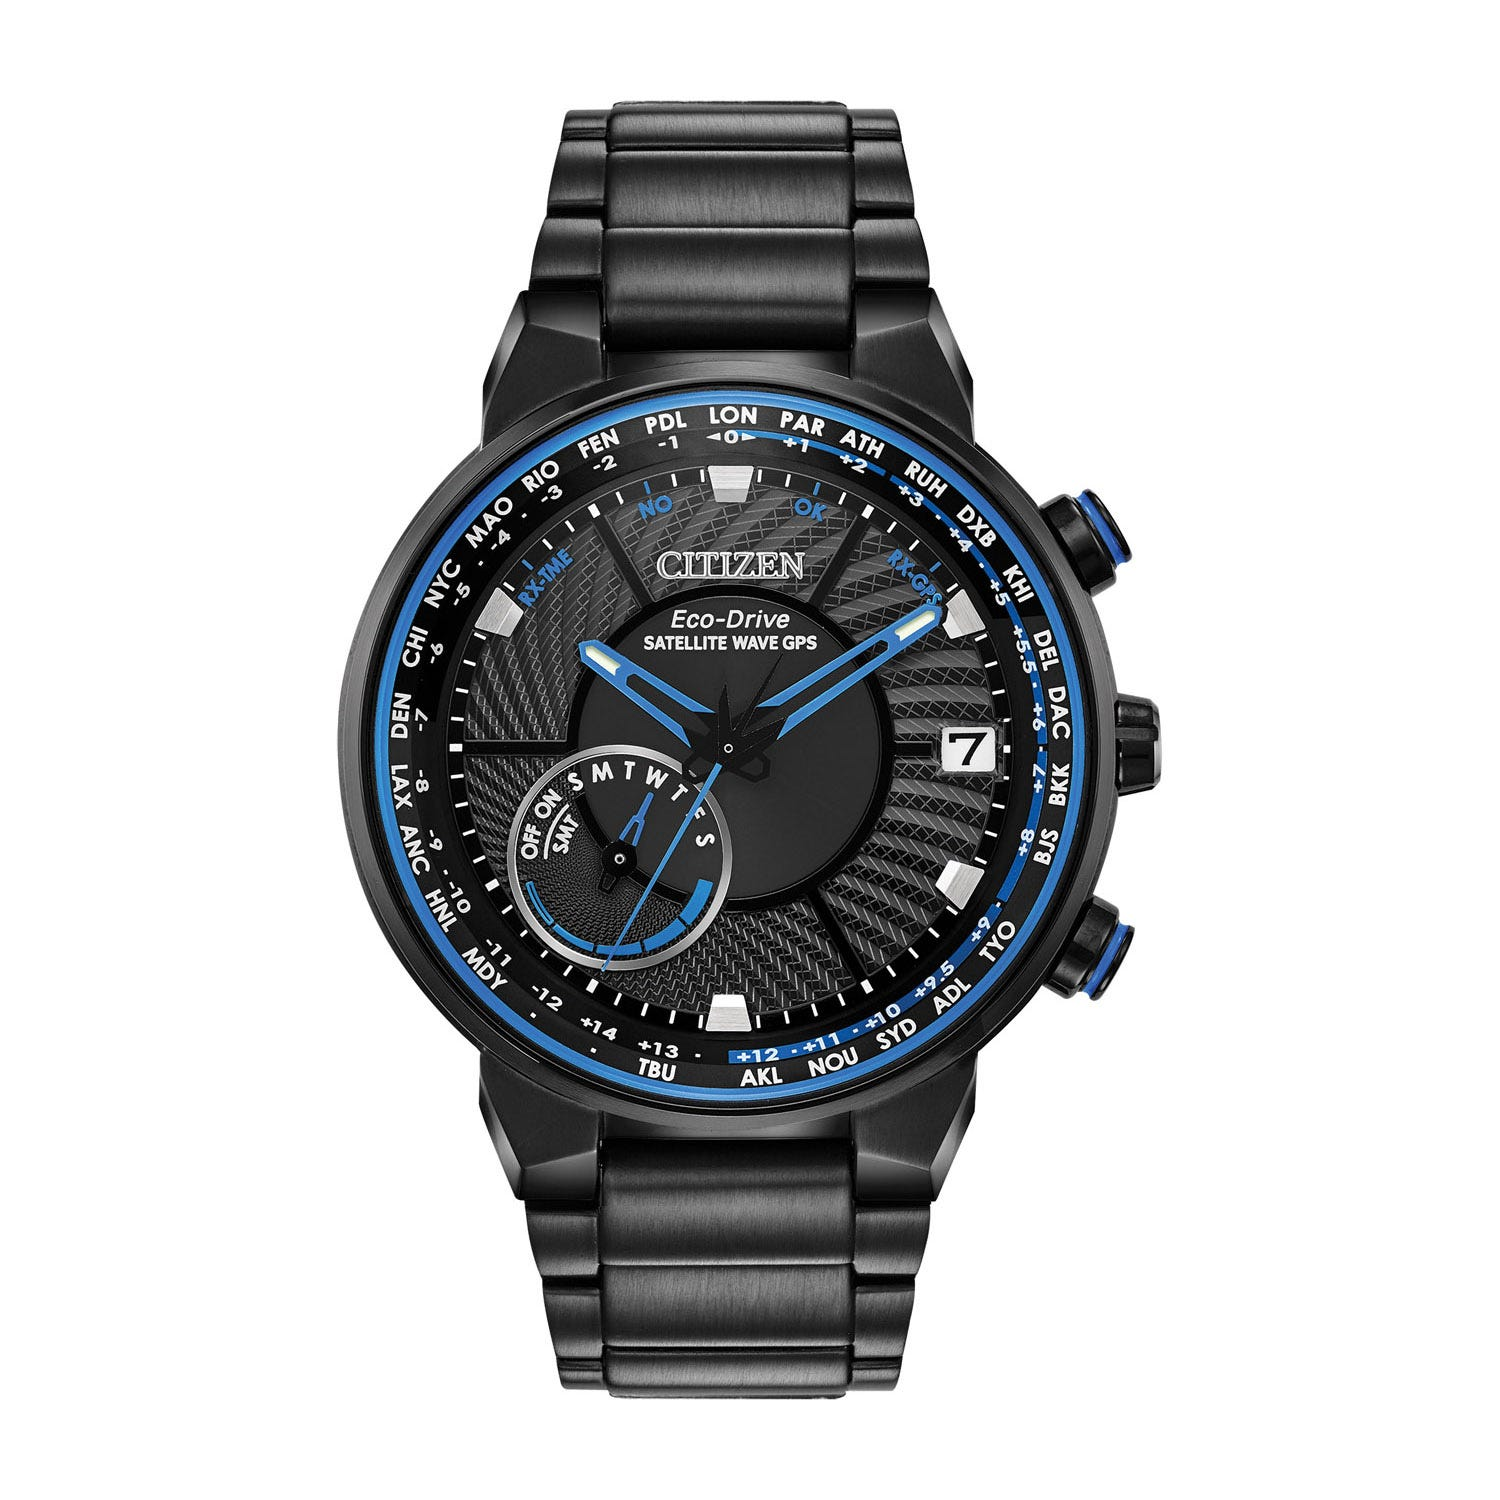 Citizen Eco-Drive Satellite Wave GPS Men's Watch